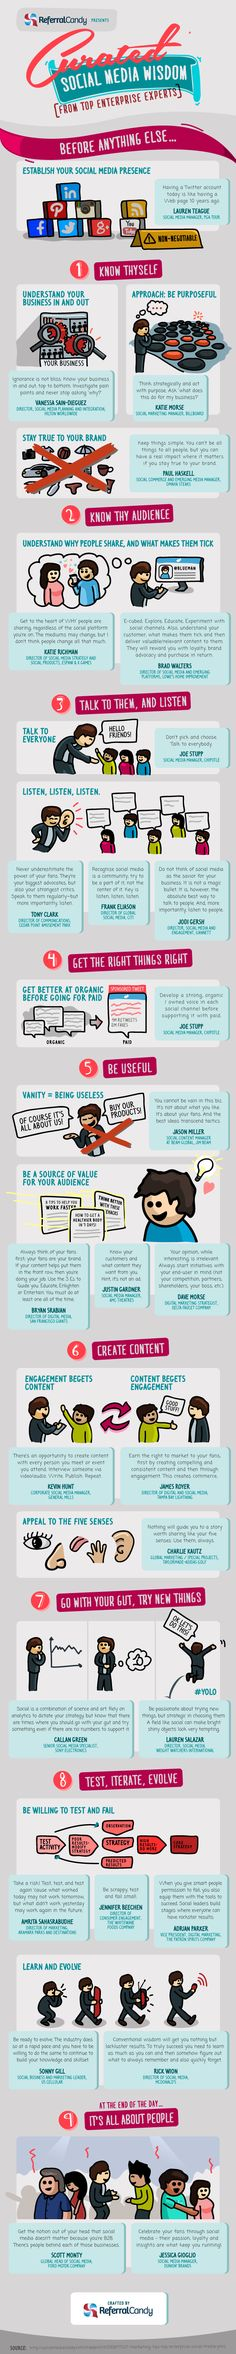 Social Media Advice From Those Actually Doing Social Media [INFOGRAPHIC]